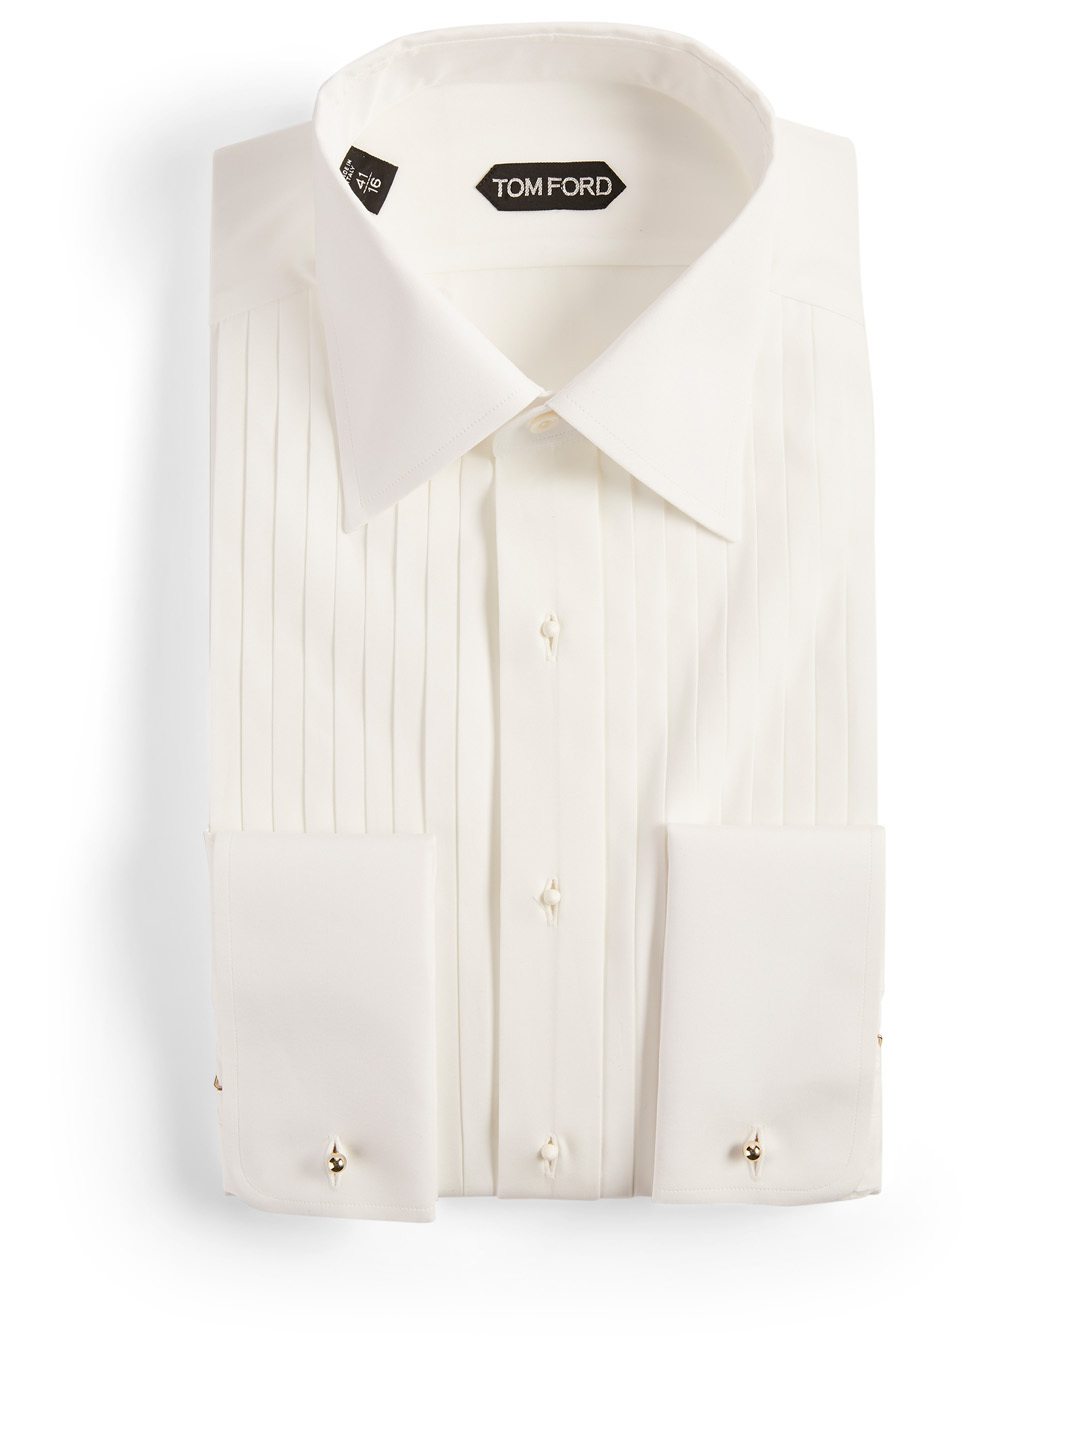 TOM FORD Tuxedo Shirt Men's White